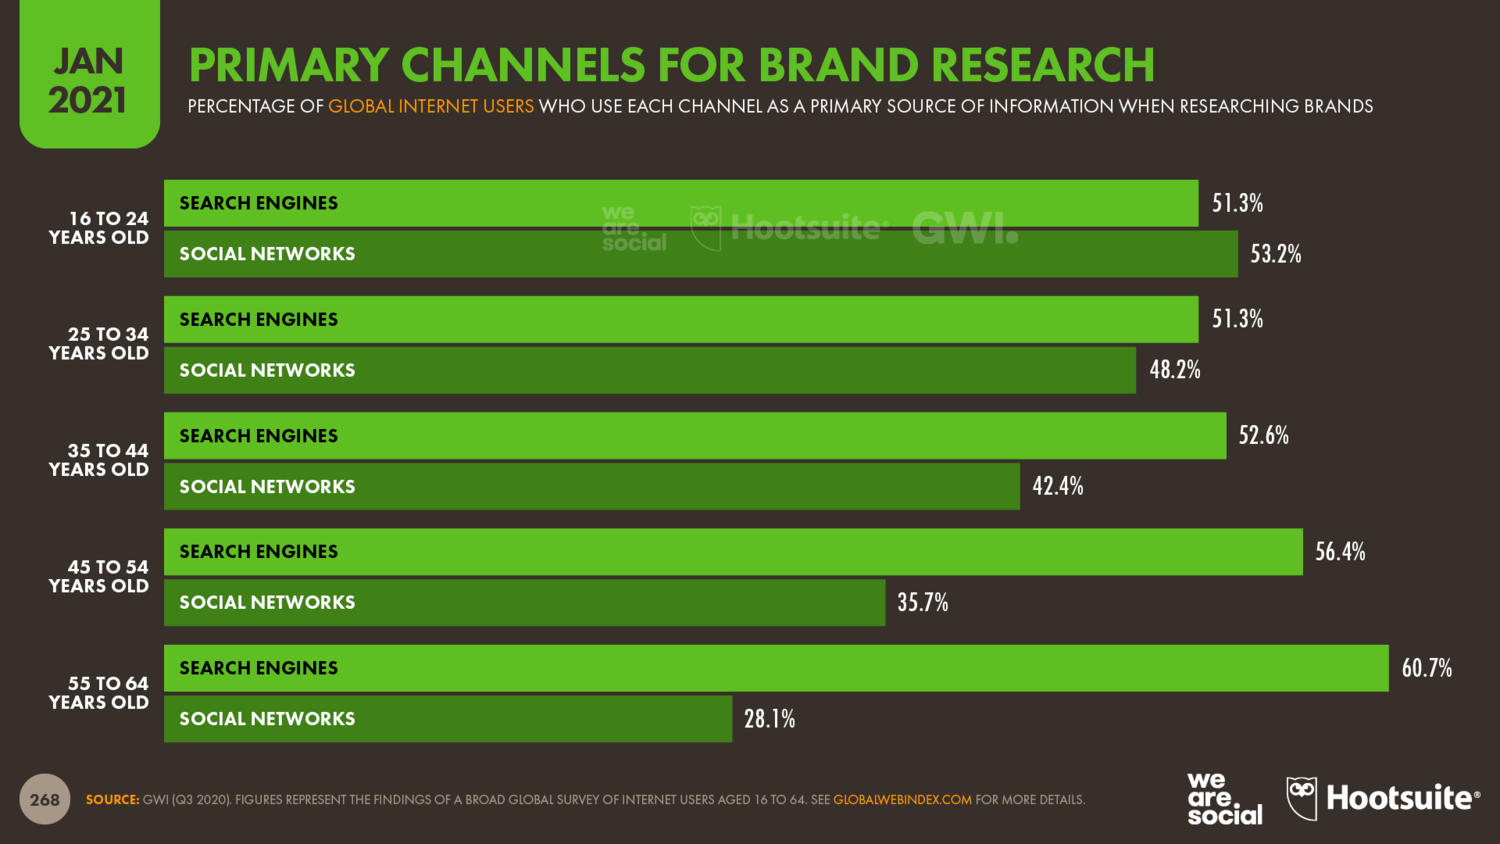 There is a tug-of-war between search engines and social networks when it comes to doing brand research.